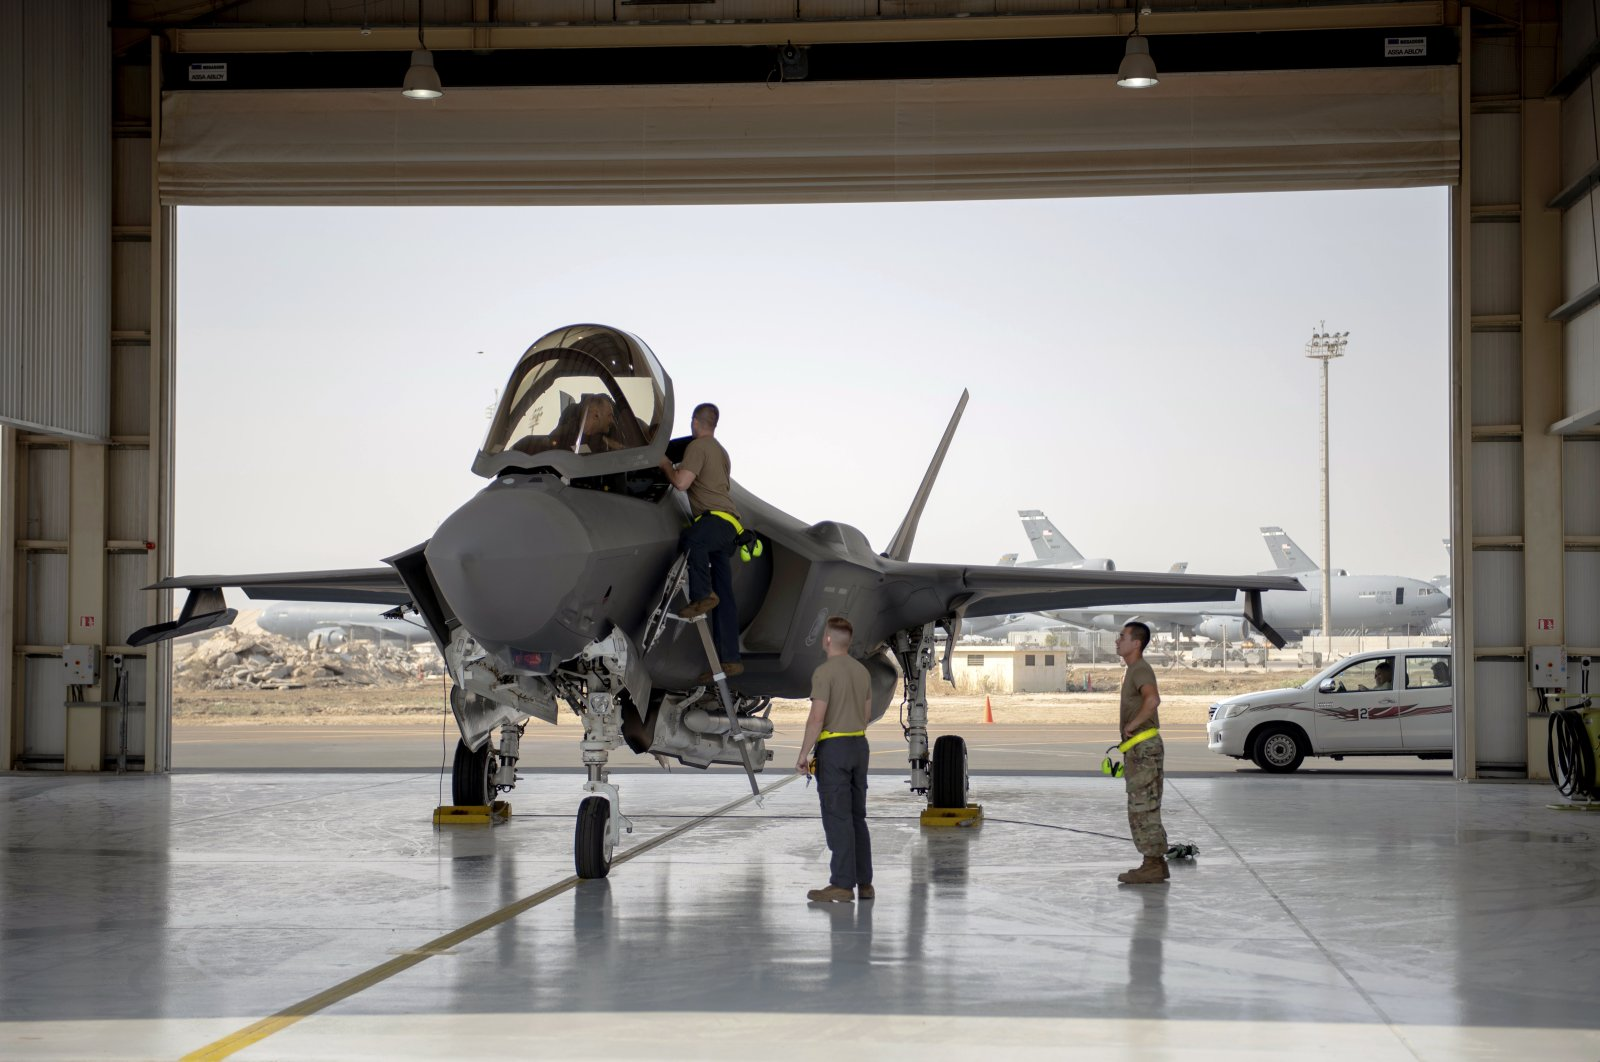 An F-35 fighter jet pilot and crew prepare for a mission at Al-Dhafra Air Base, in the United Arab Emirates, Aug. 5, 2019. (U.S. Air Force via AP)